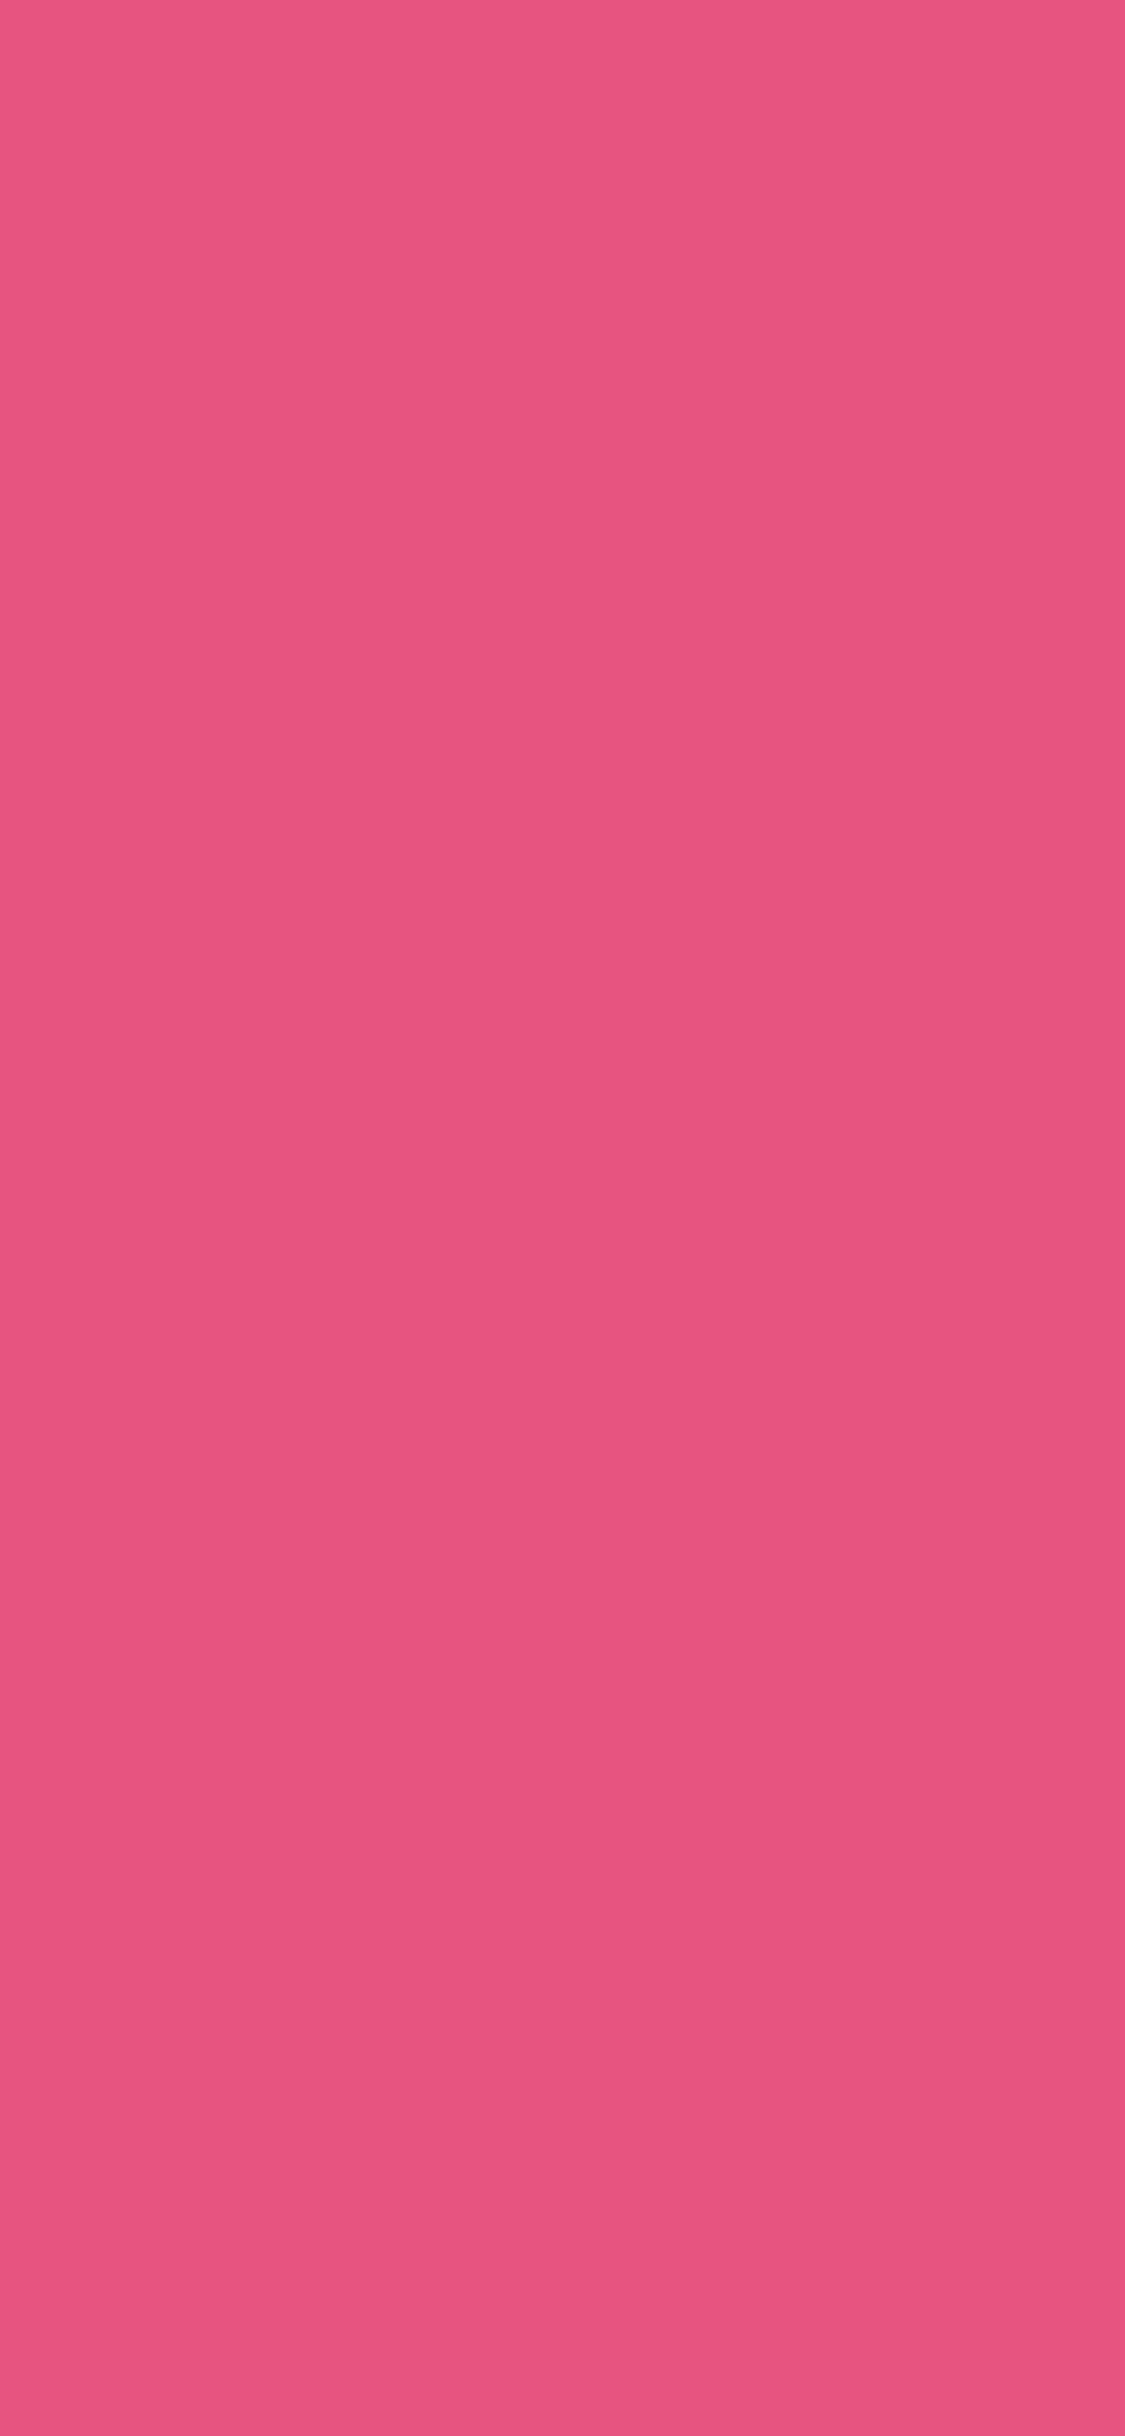 1125x2436 Dark Pink Solid Color Background